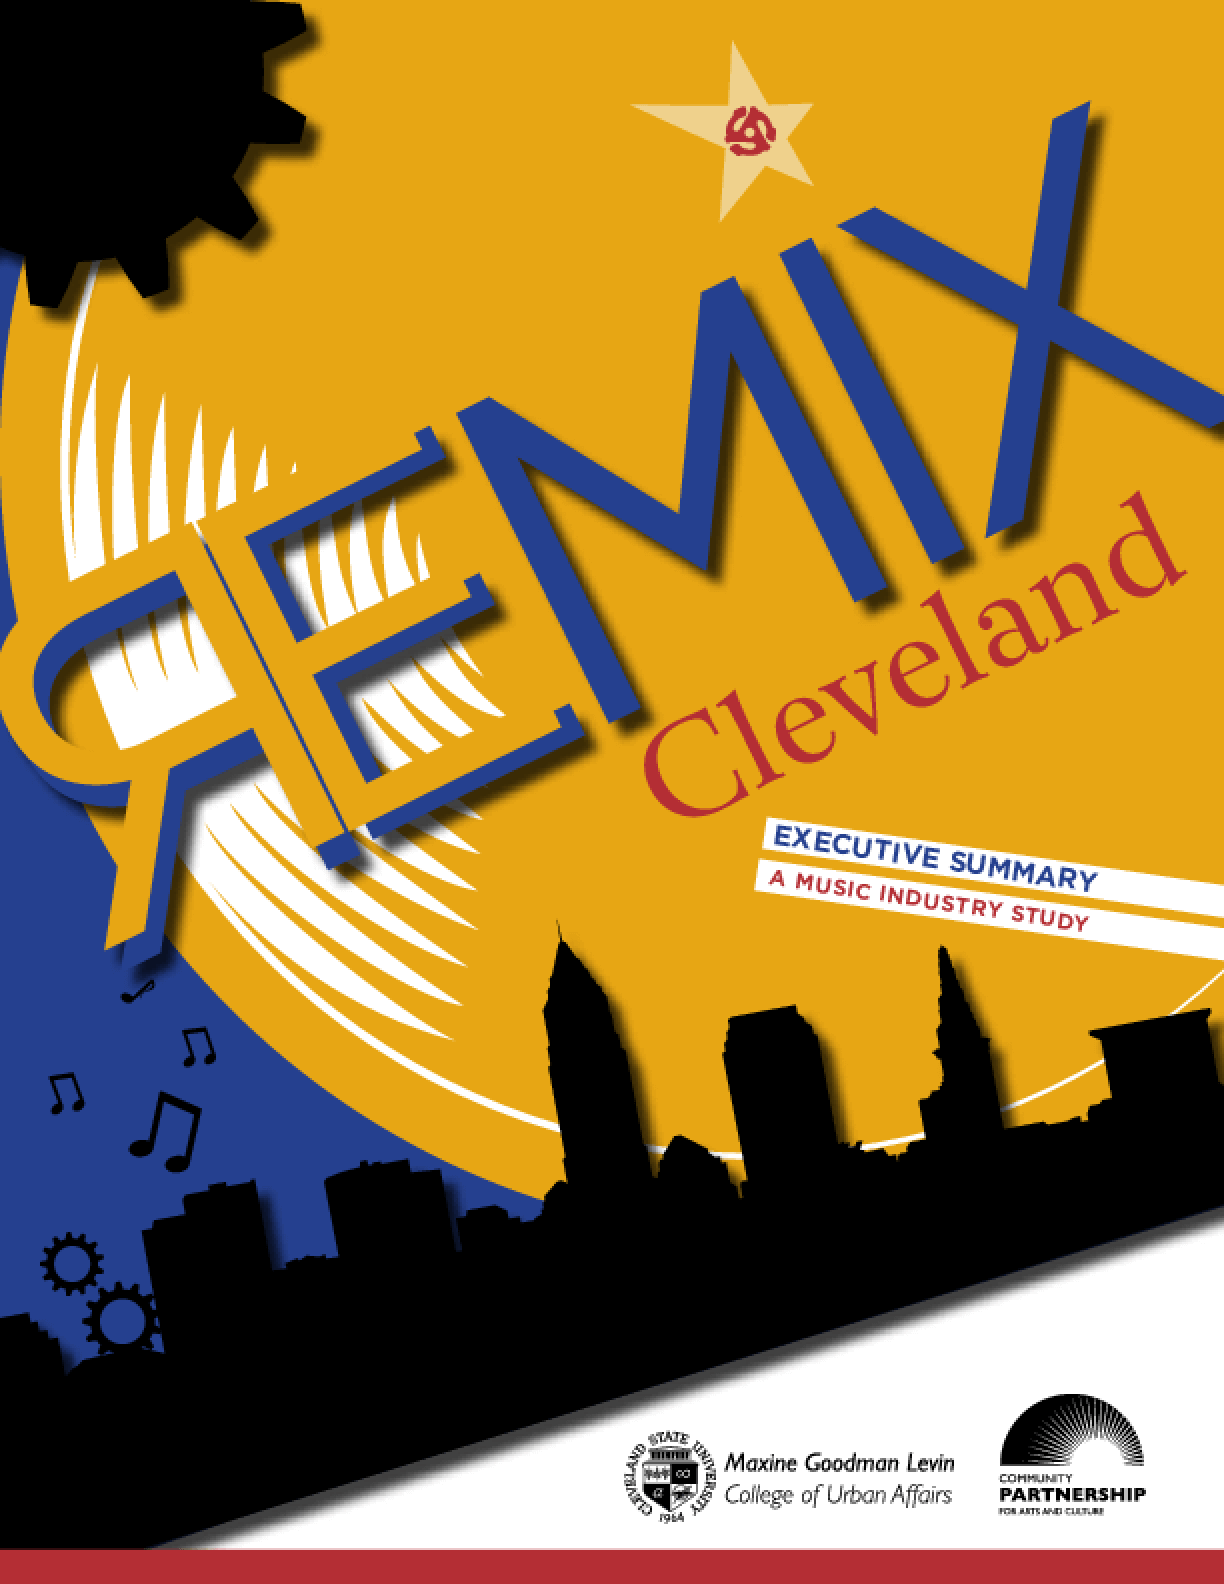 Remix Cleveland: A Music Industry Study - Executive Summary